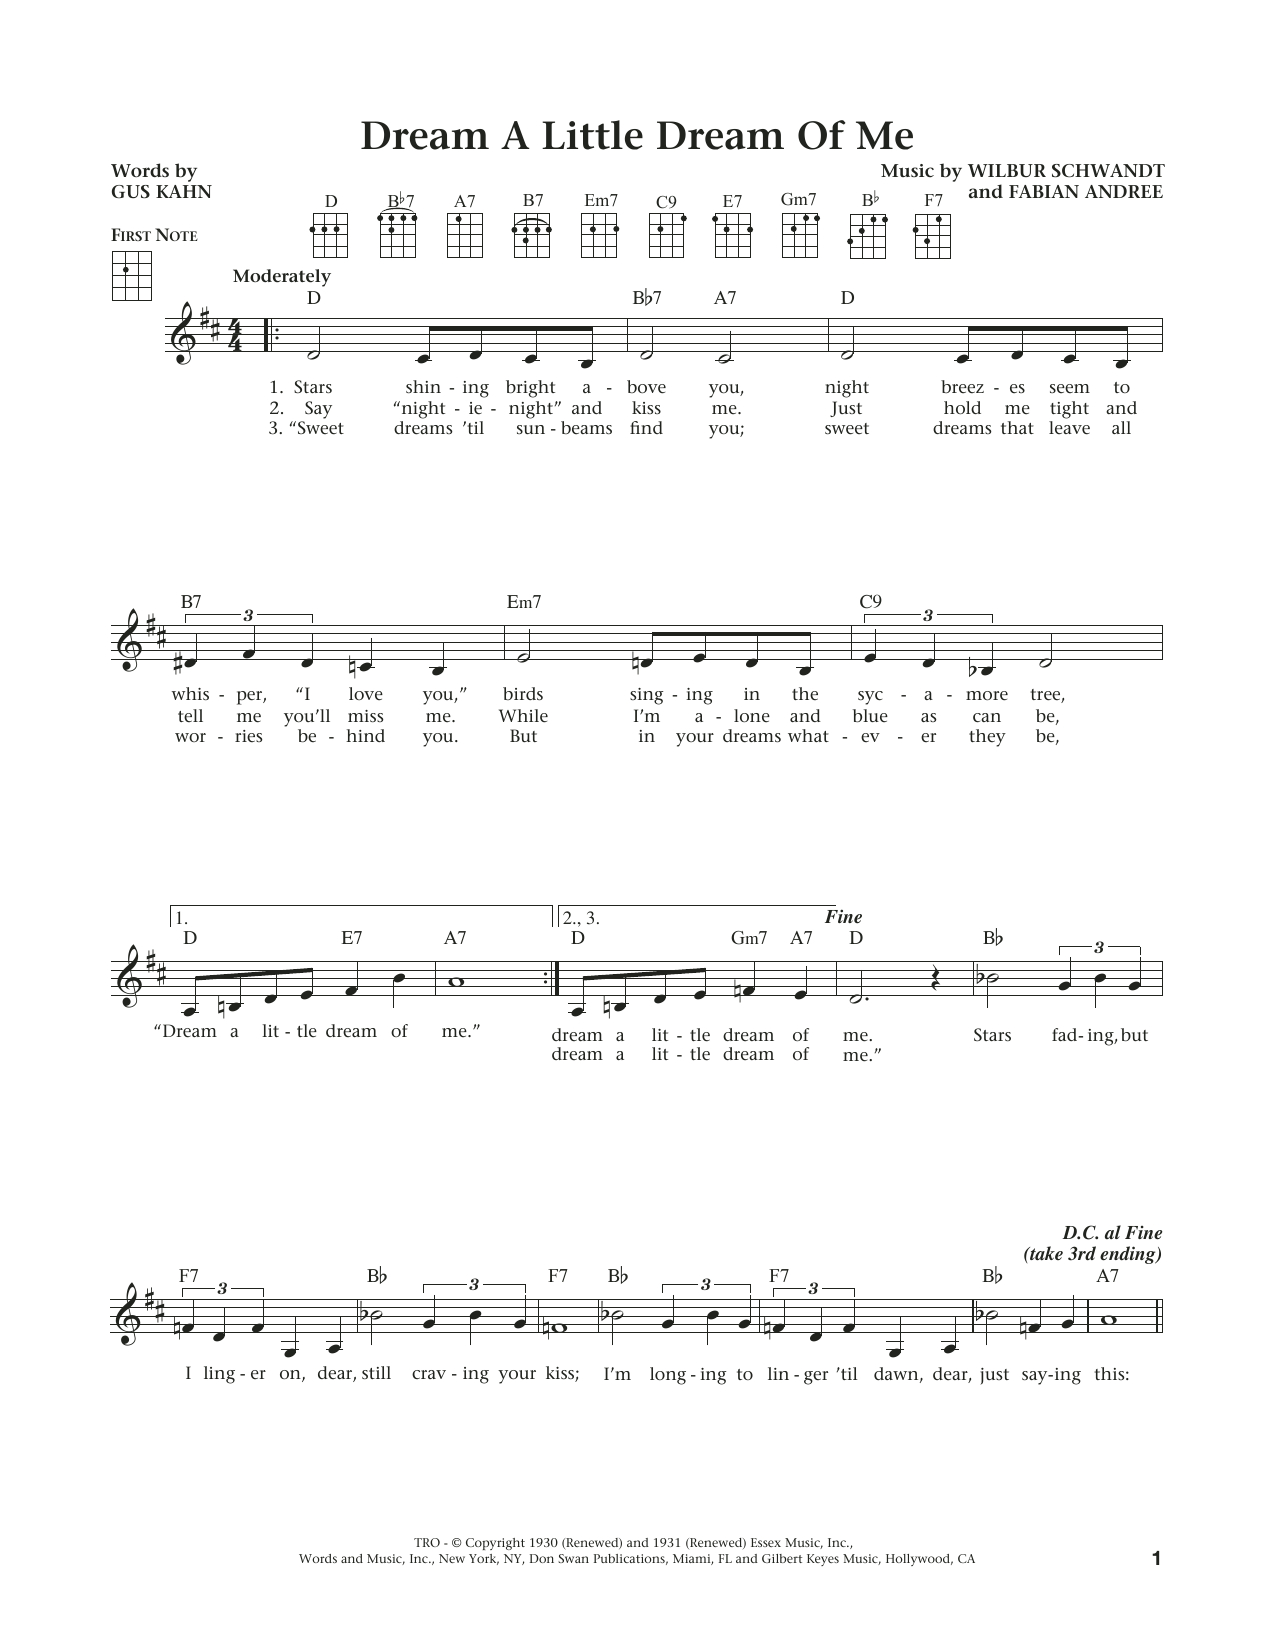 Dream A Little Dream Of Me Chords The Mamas The Papas Dream A Little Dream Of Me Sheet Music Notes Chords Download Printable Ukulele Sku 184154